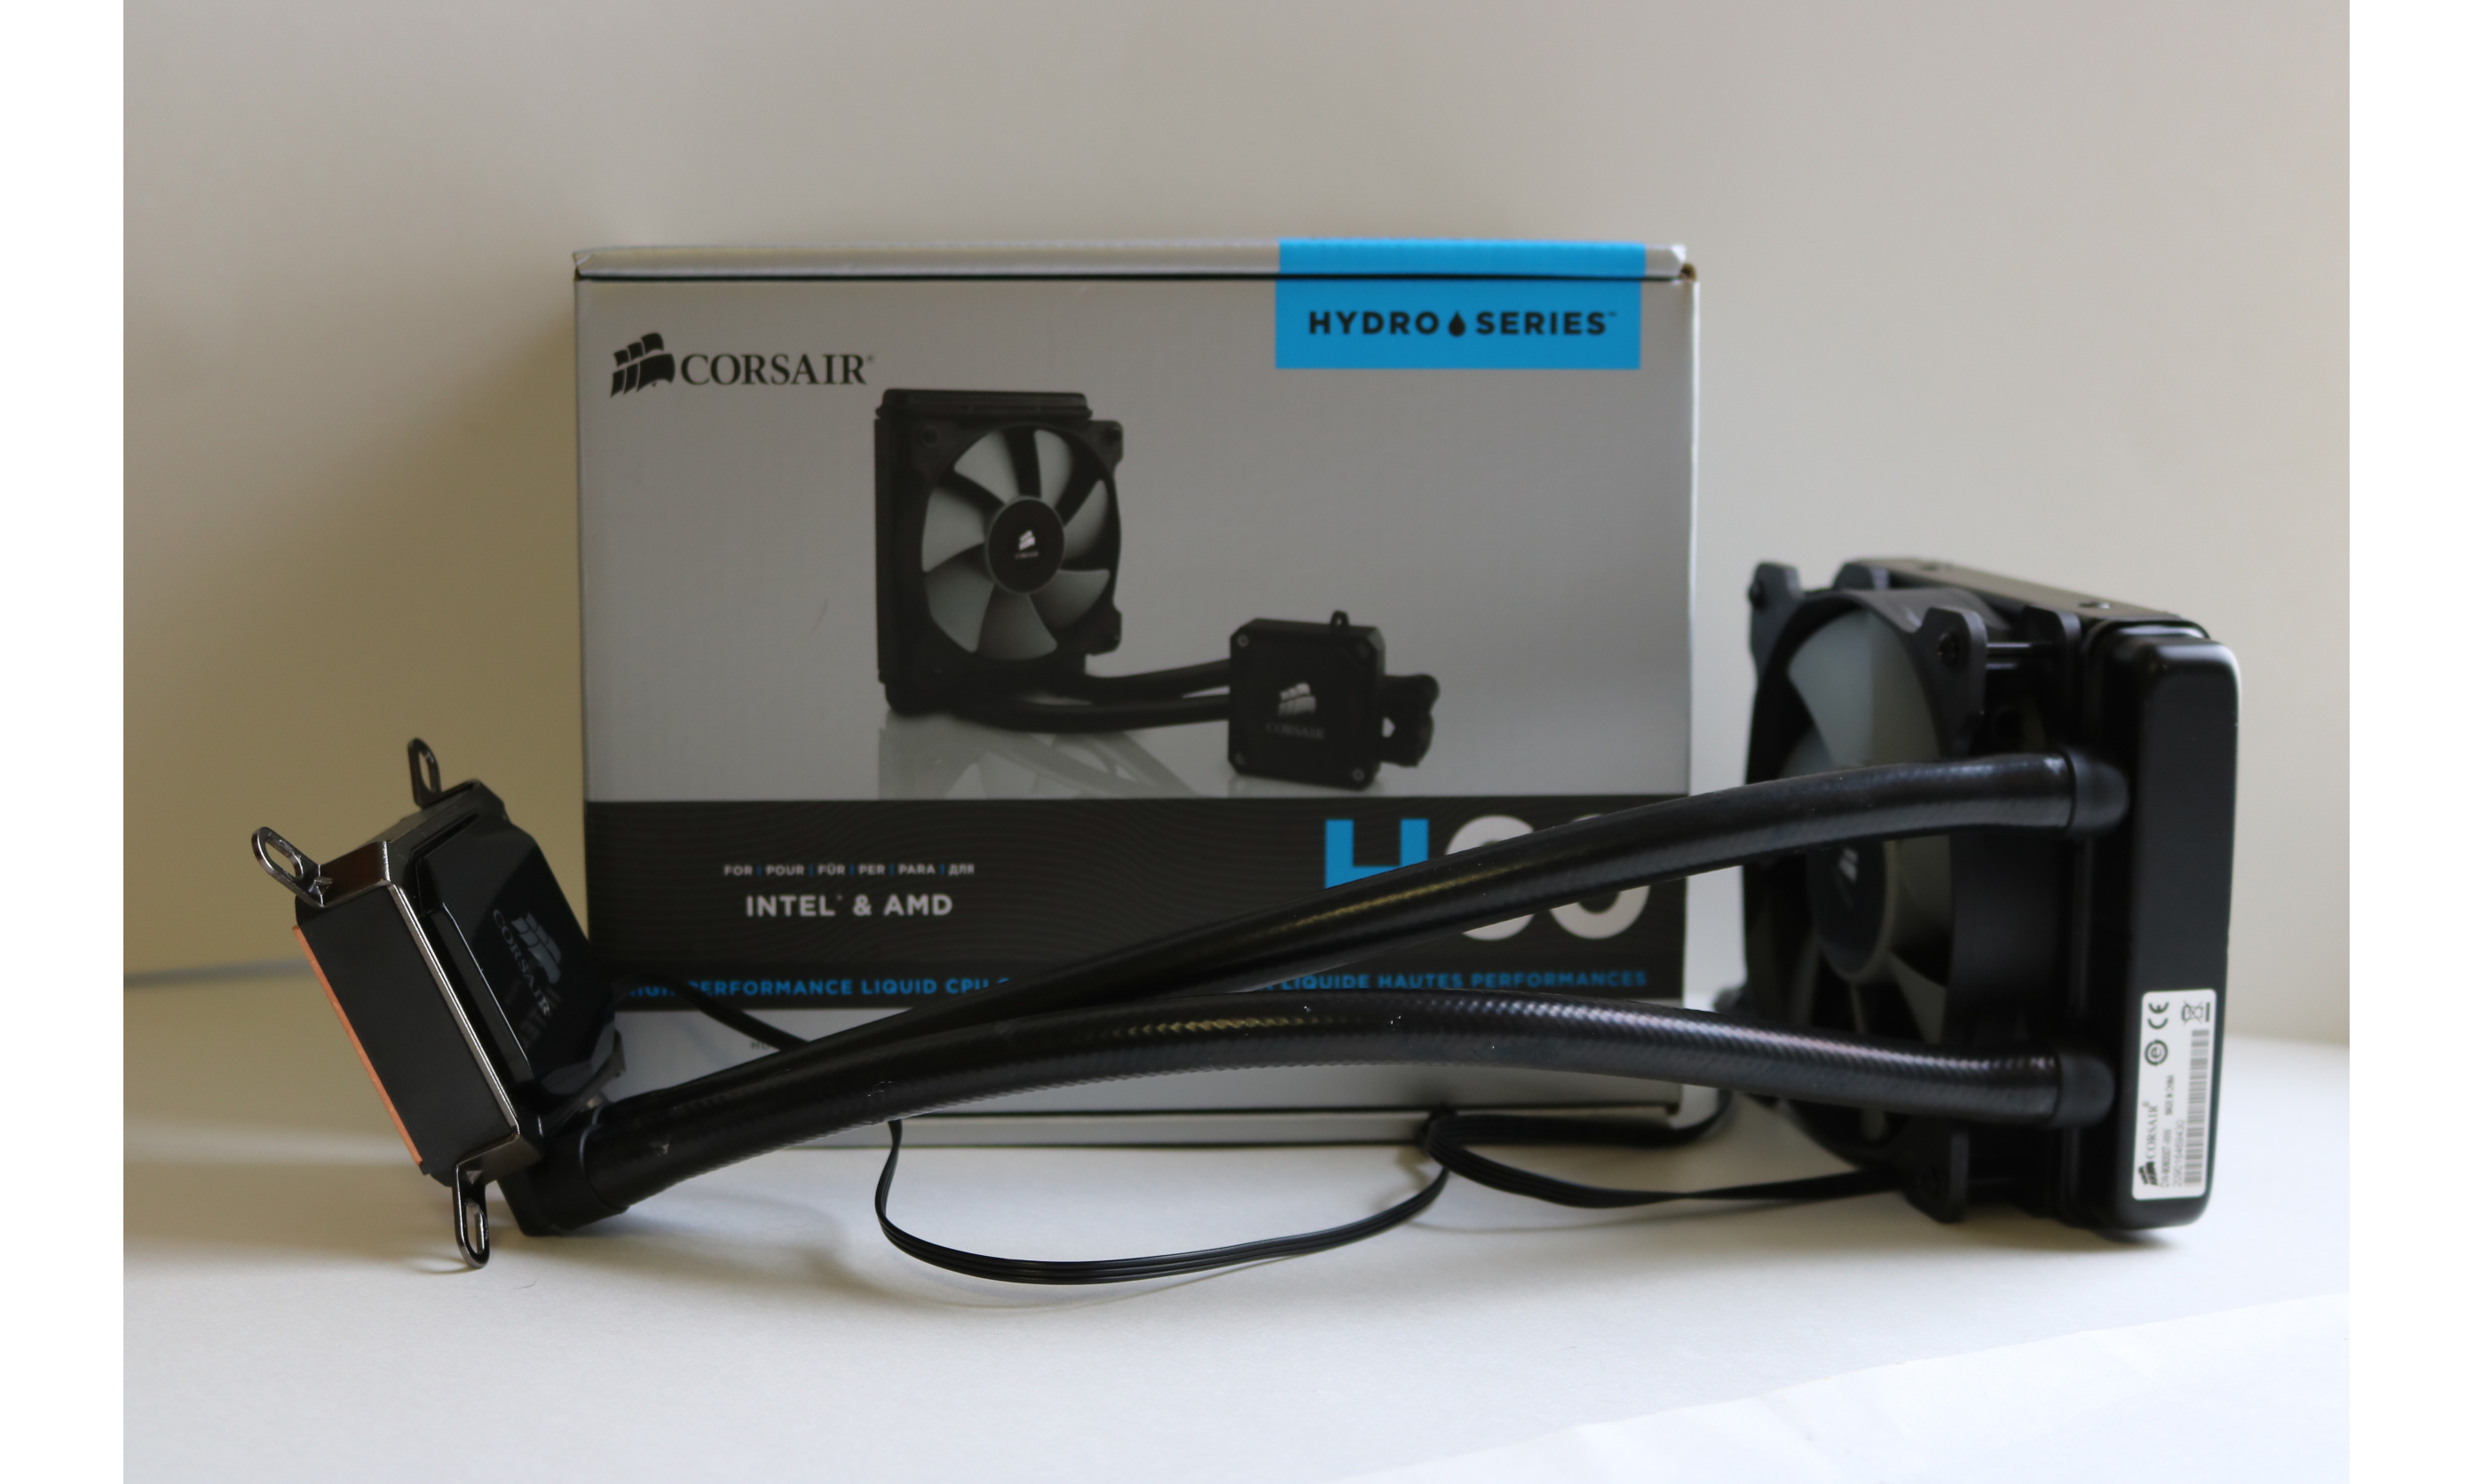 Corsair H60 Aio Liquid Cooler Review Cooler Reviews Cooler Technology